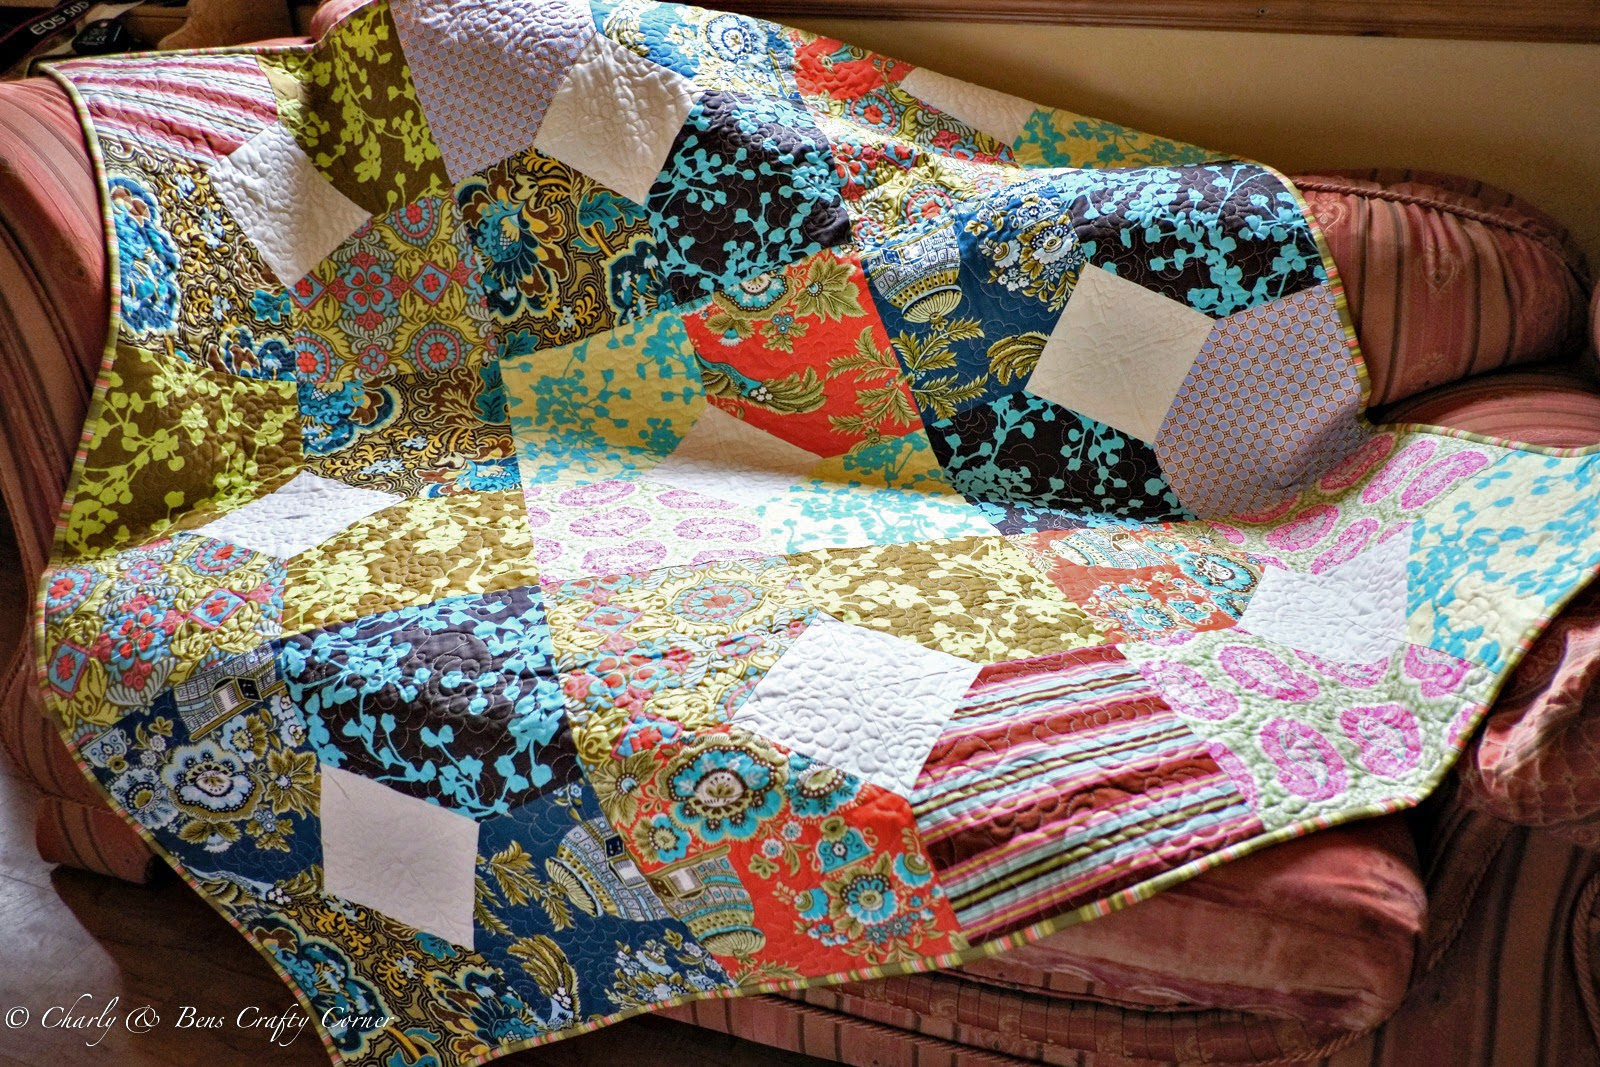 Charly Amp Ben S Crafty Corner Trunk Full Of Quilts